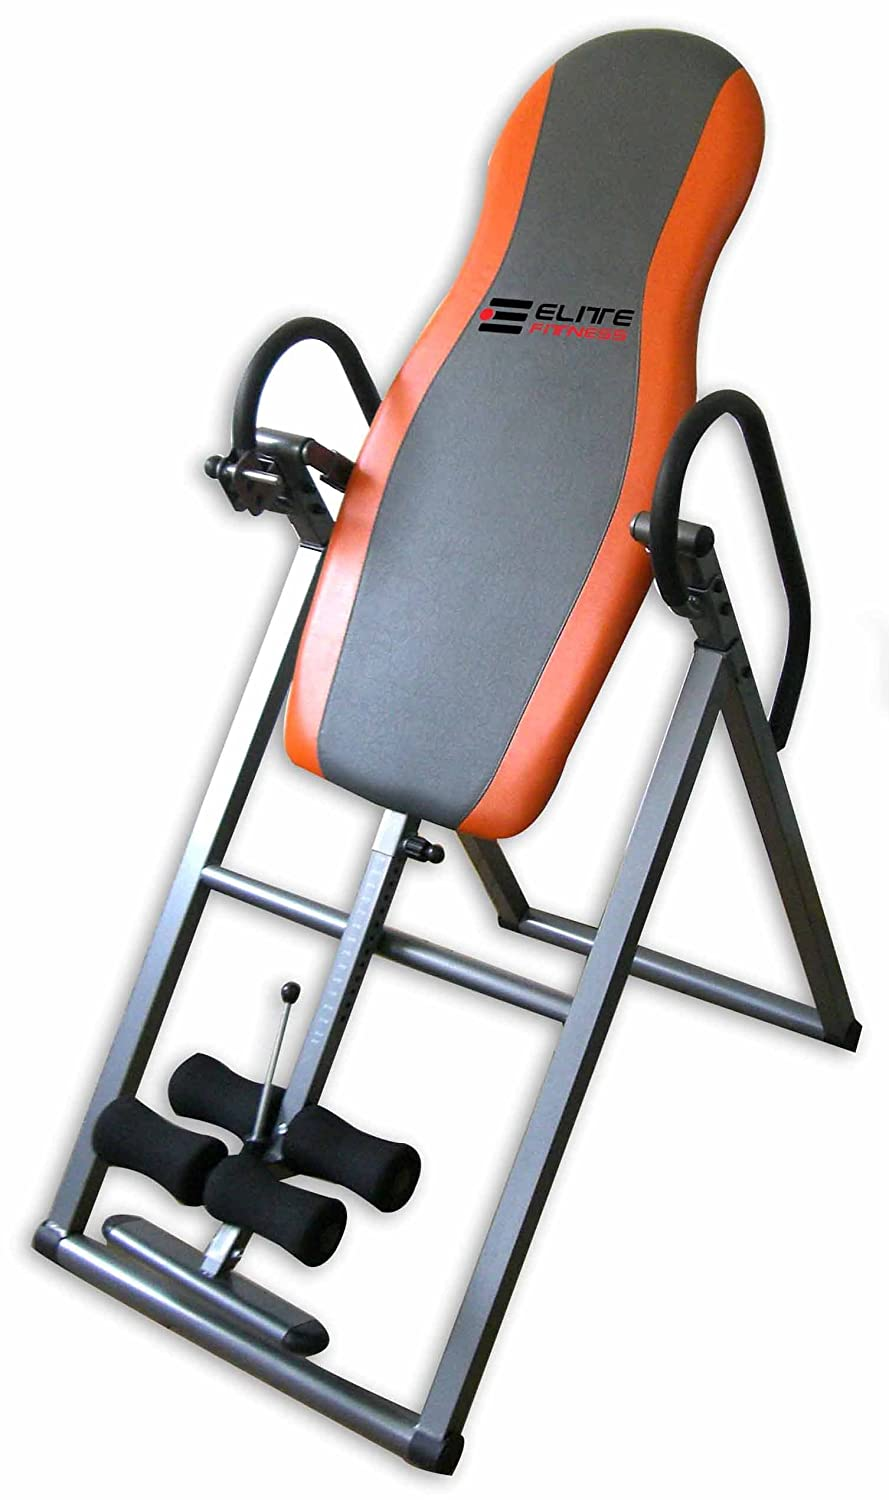 Elite fitness inversion table 9600 manual sport fatare for Table 6 2 ar 71 32